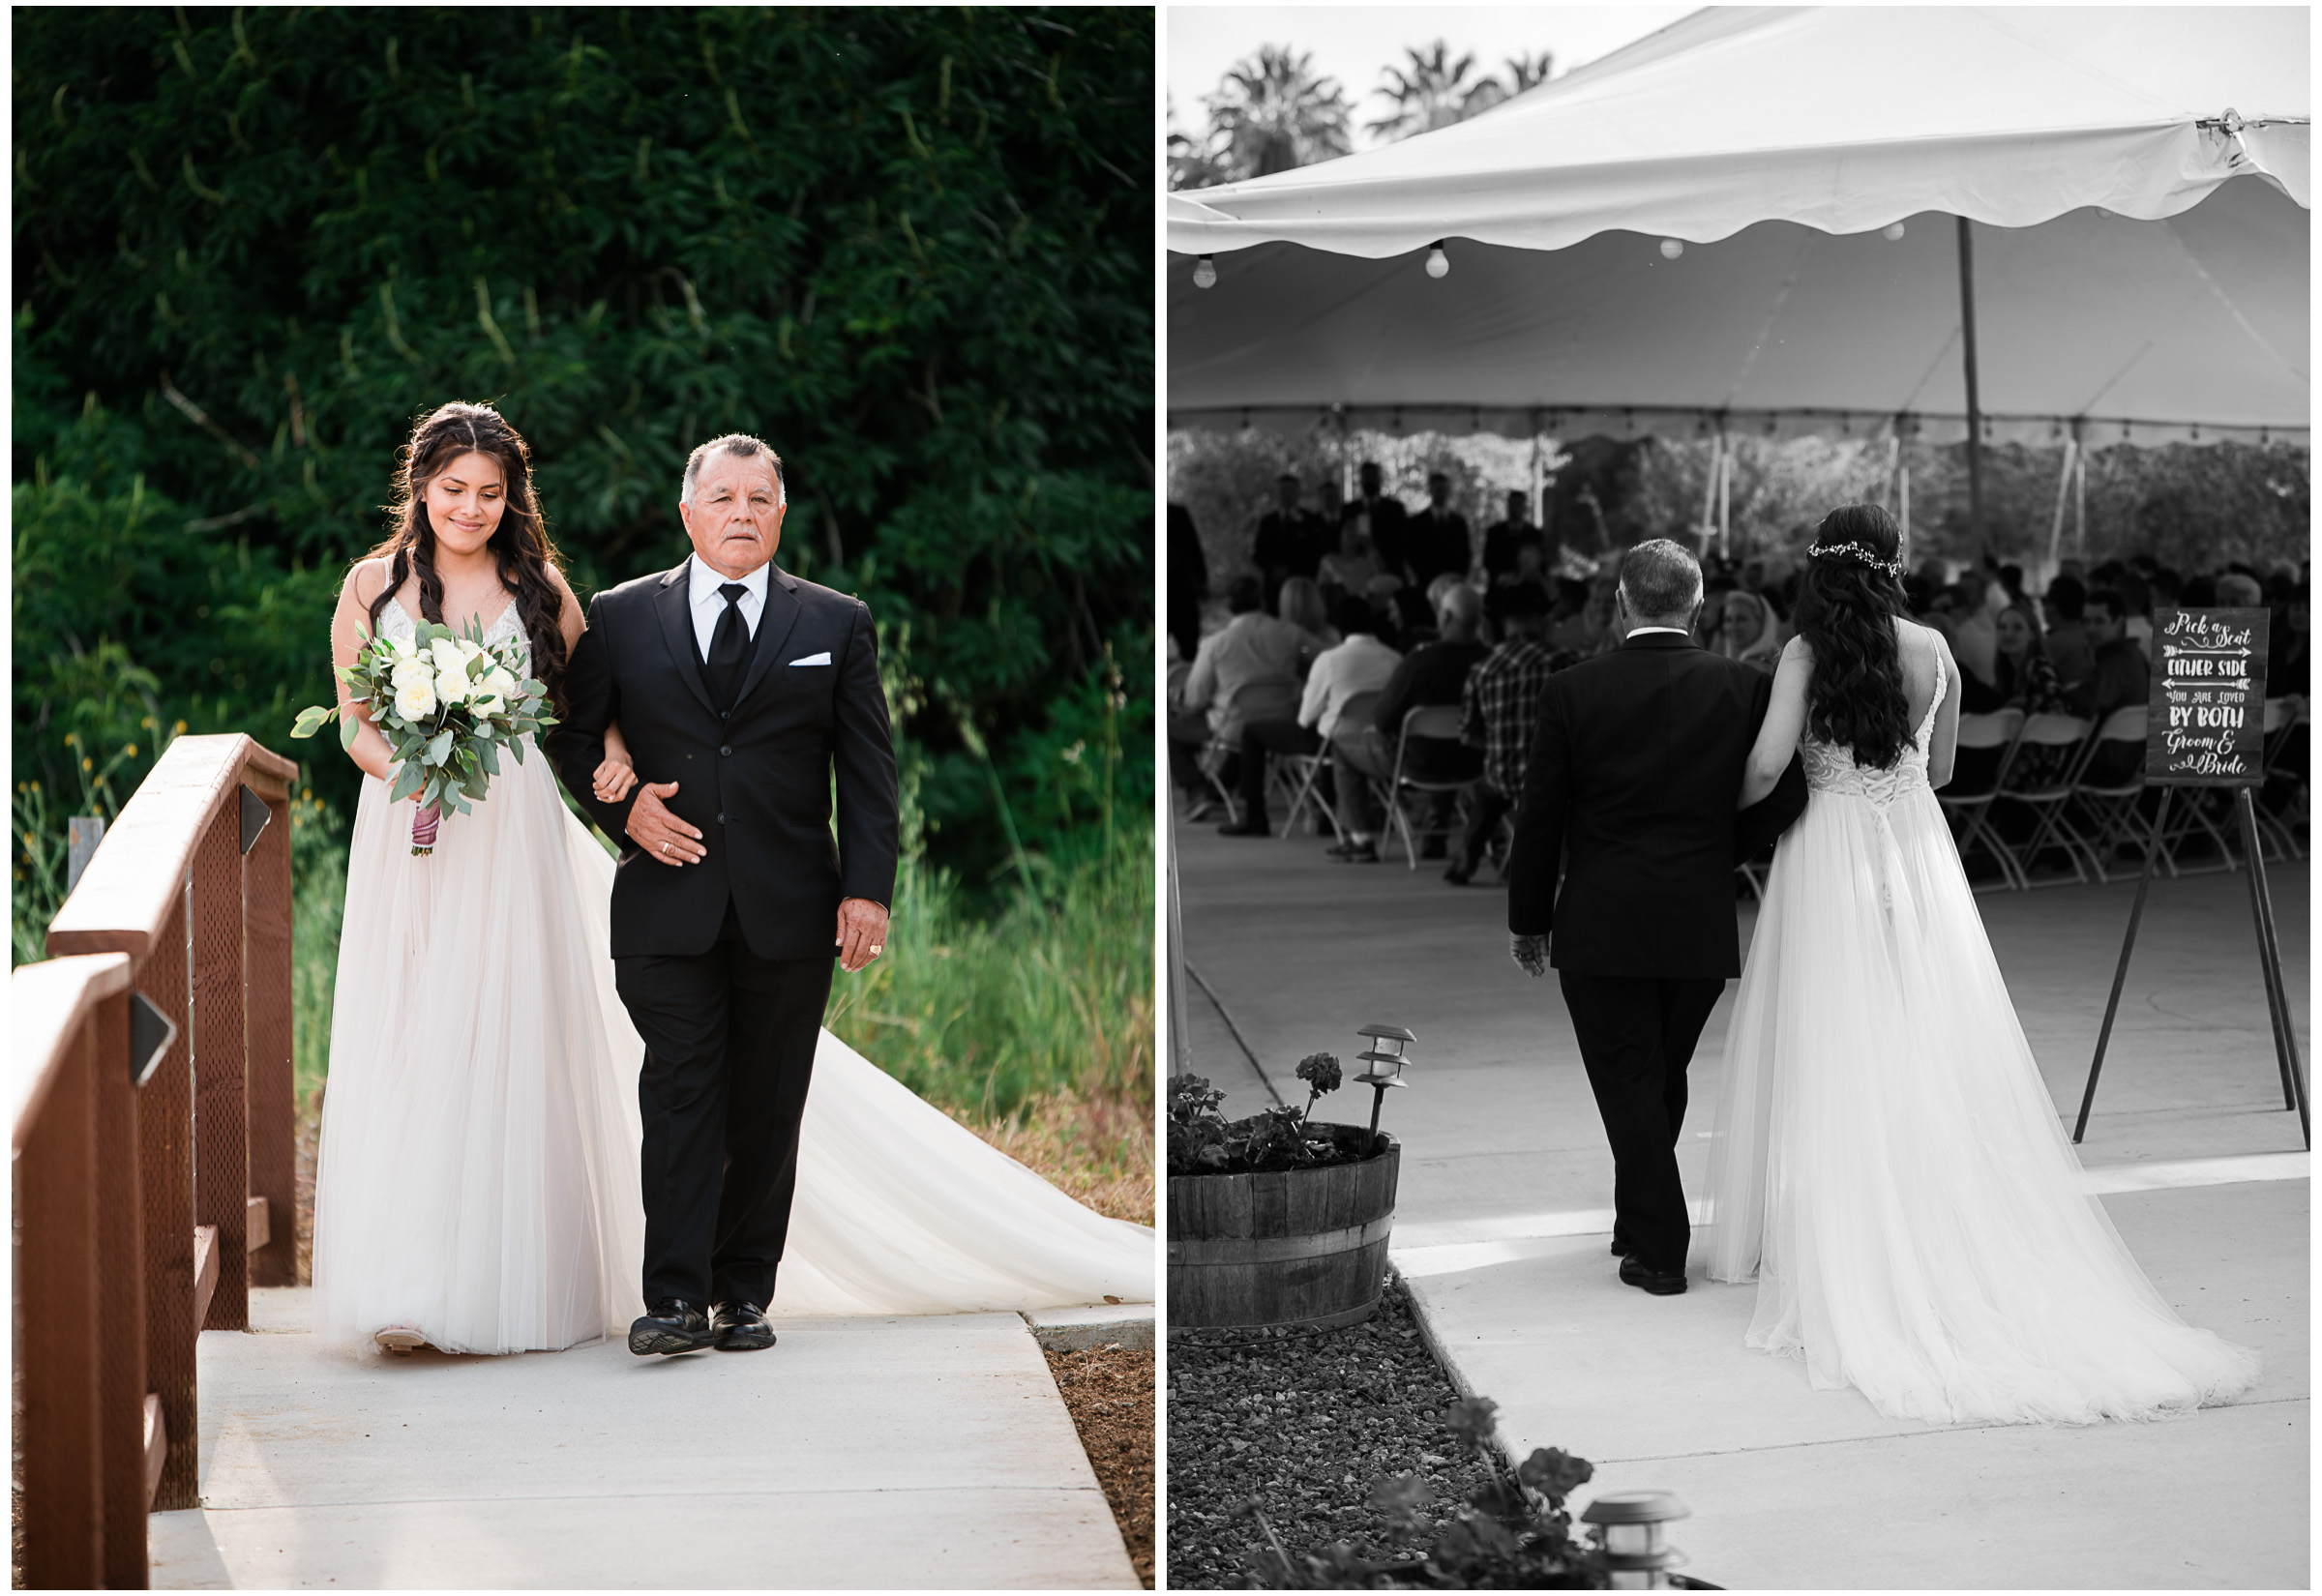 Lincoln Wedding - Sacramento Photographer - Rock Hill Winery - Justin Wilcox Photography - 7.jpg